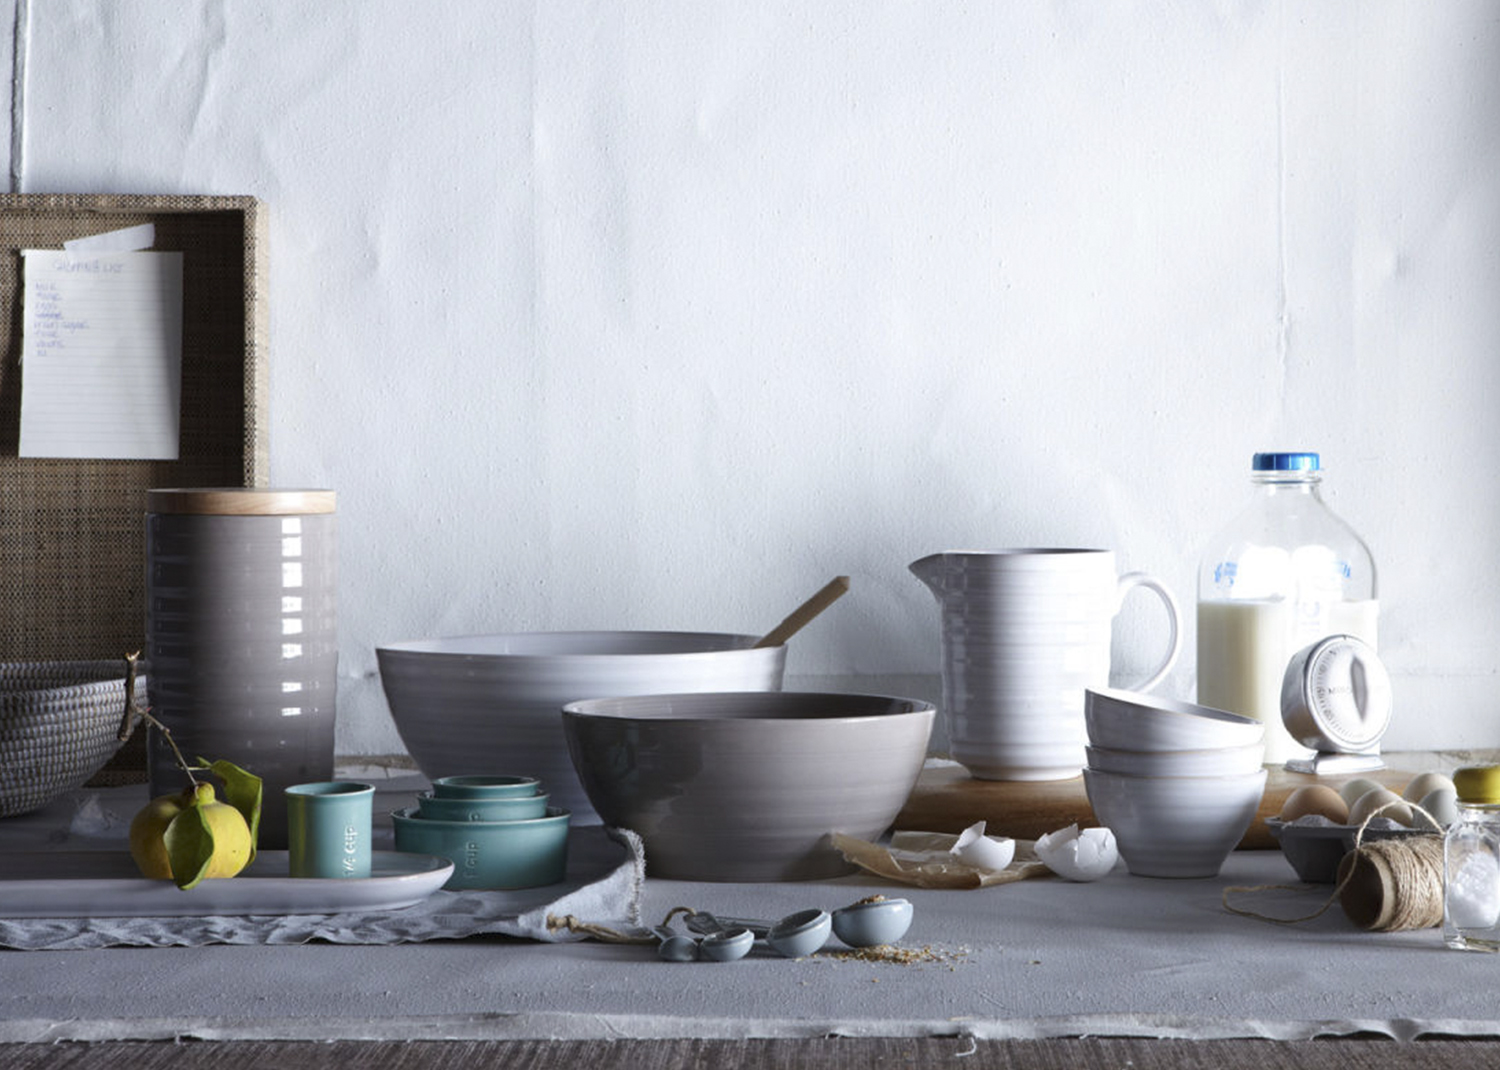 West Elm Flint and Kent Alex Bates Lifestyle Brand Consultant Sang An small batch ceramics image